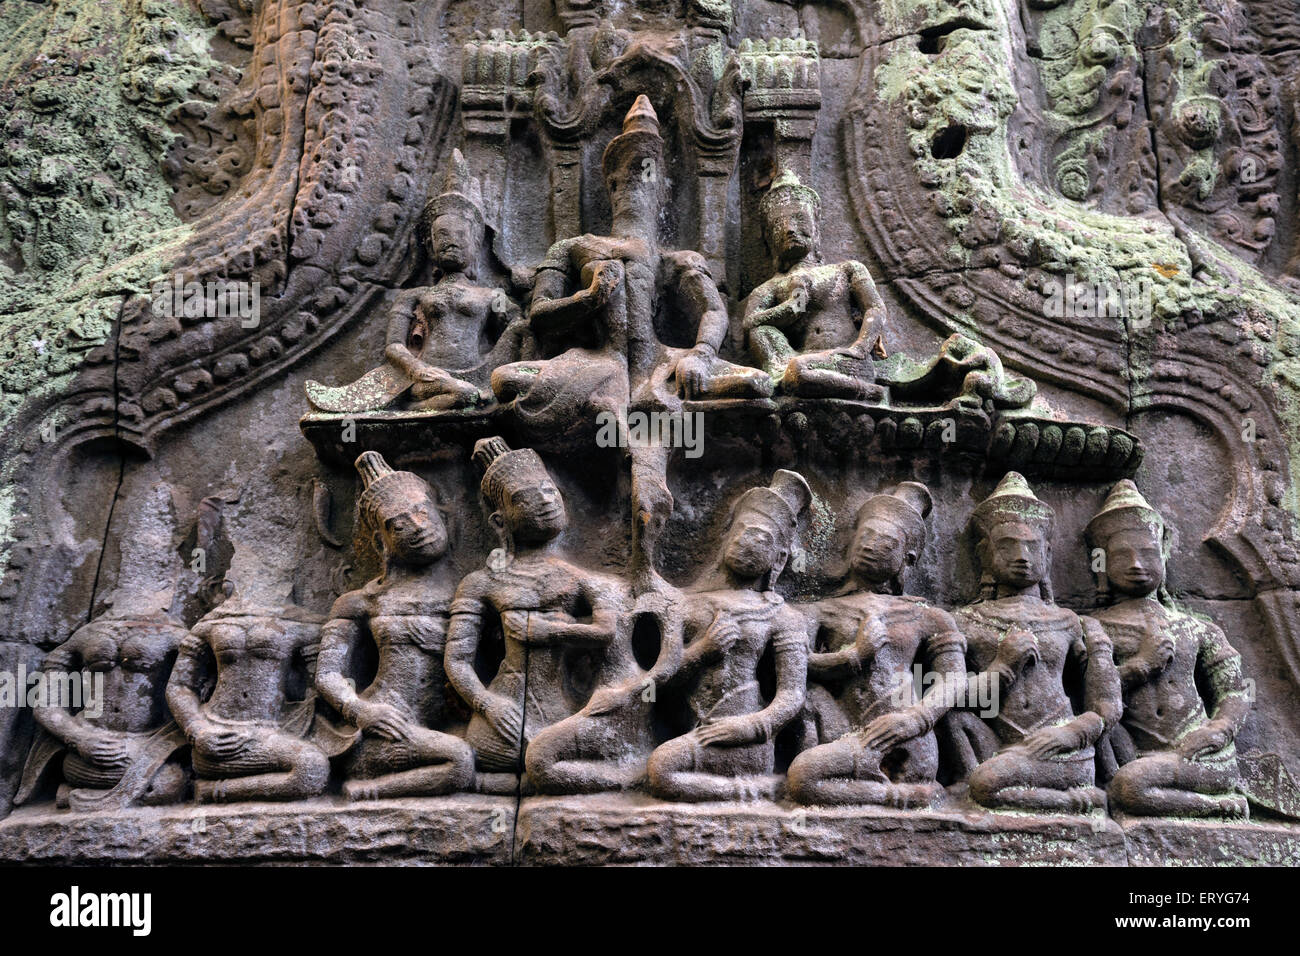 Stone carving on a gopuram, Ta Prohm Temple, Angkor Thom, Siem Reap Province, Cambodia - Stock Image